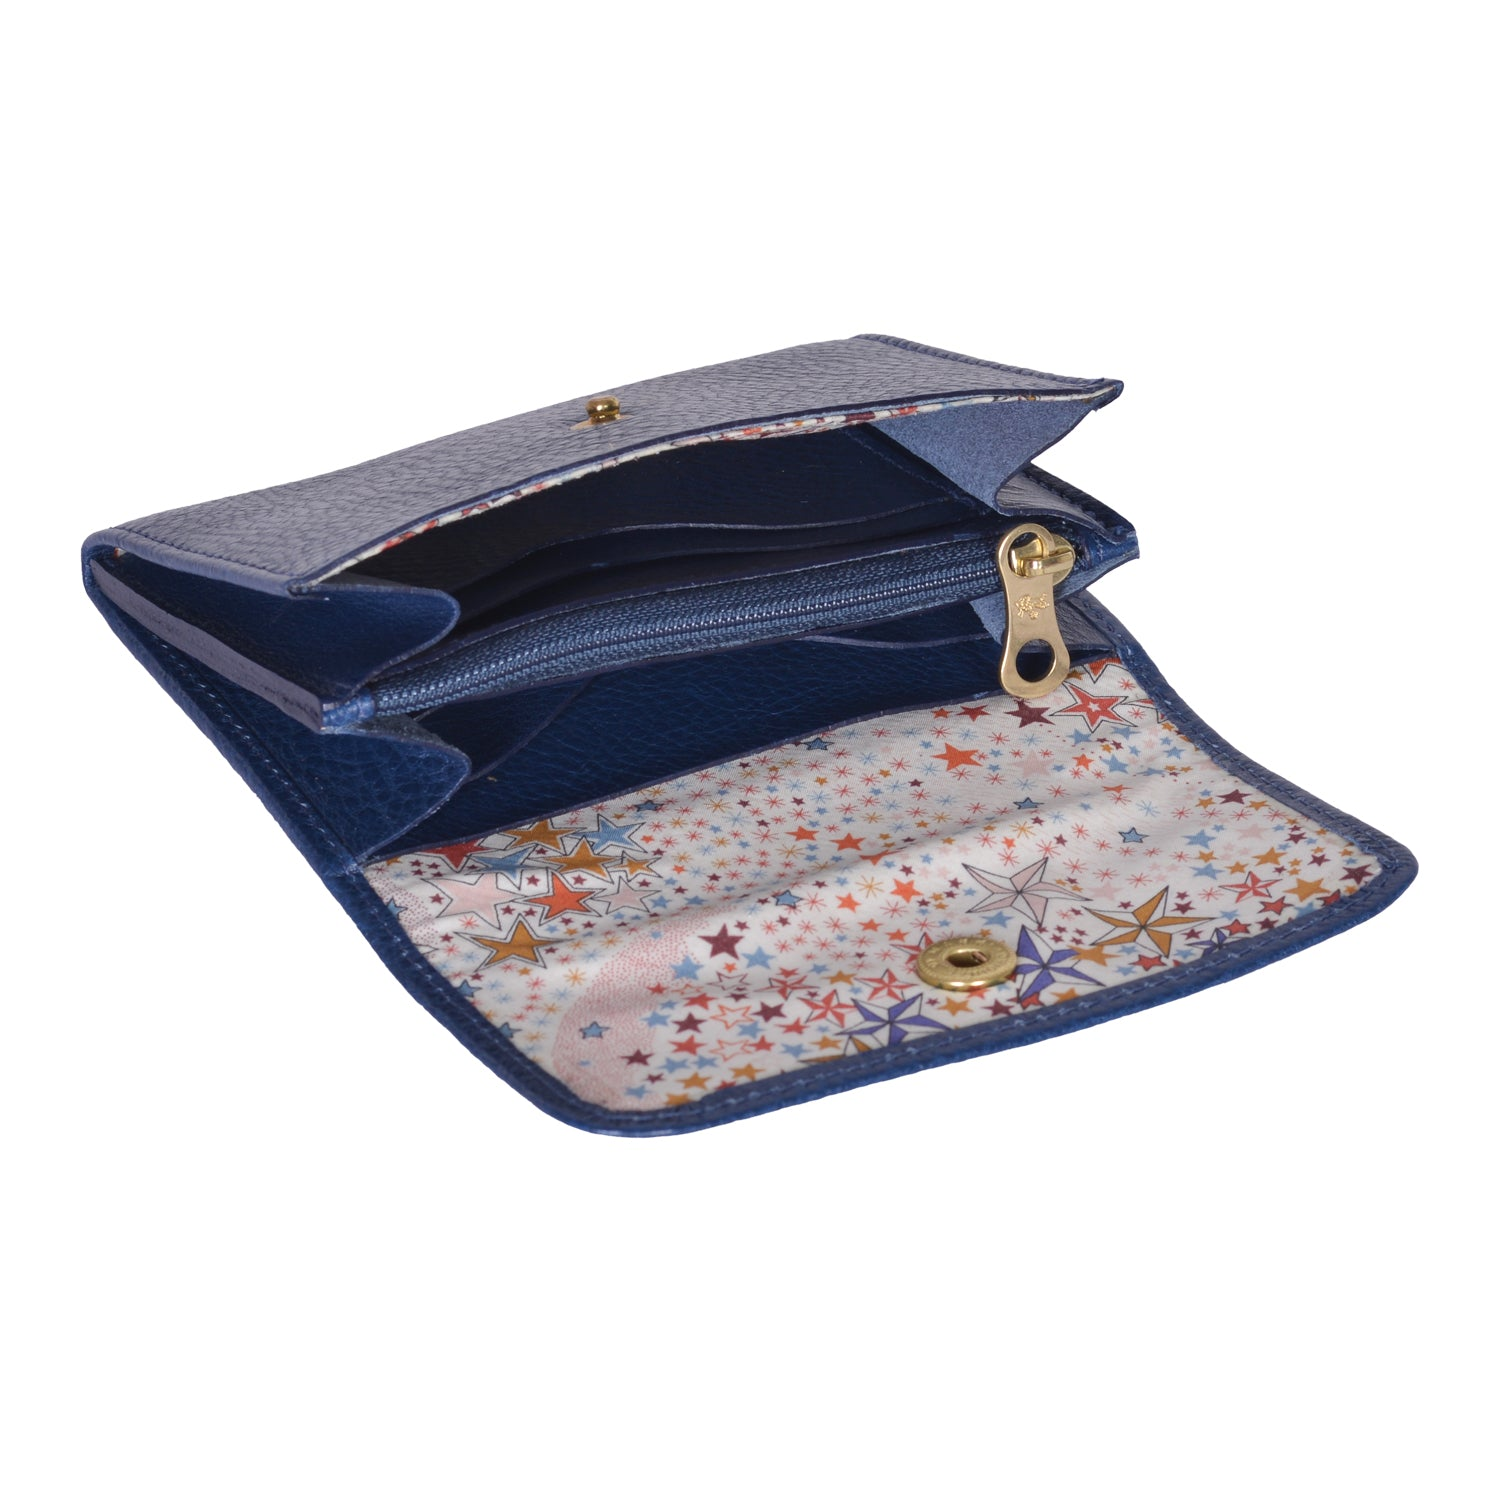 IL BISONTE LIBERTY WOMAN'S  WALLET  IN BLUE GRAIN COWHIDE LEATHER